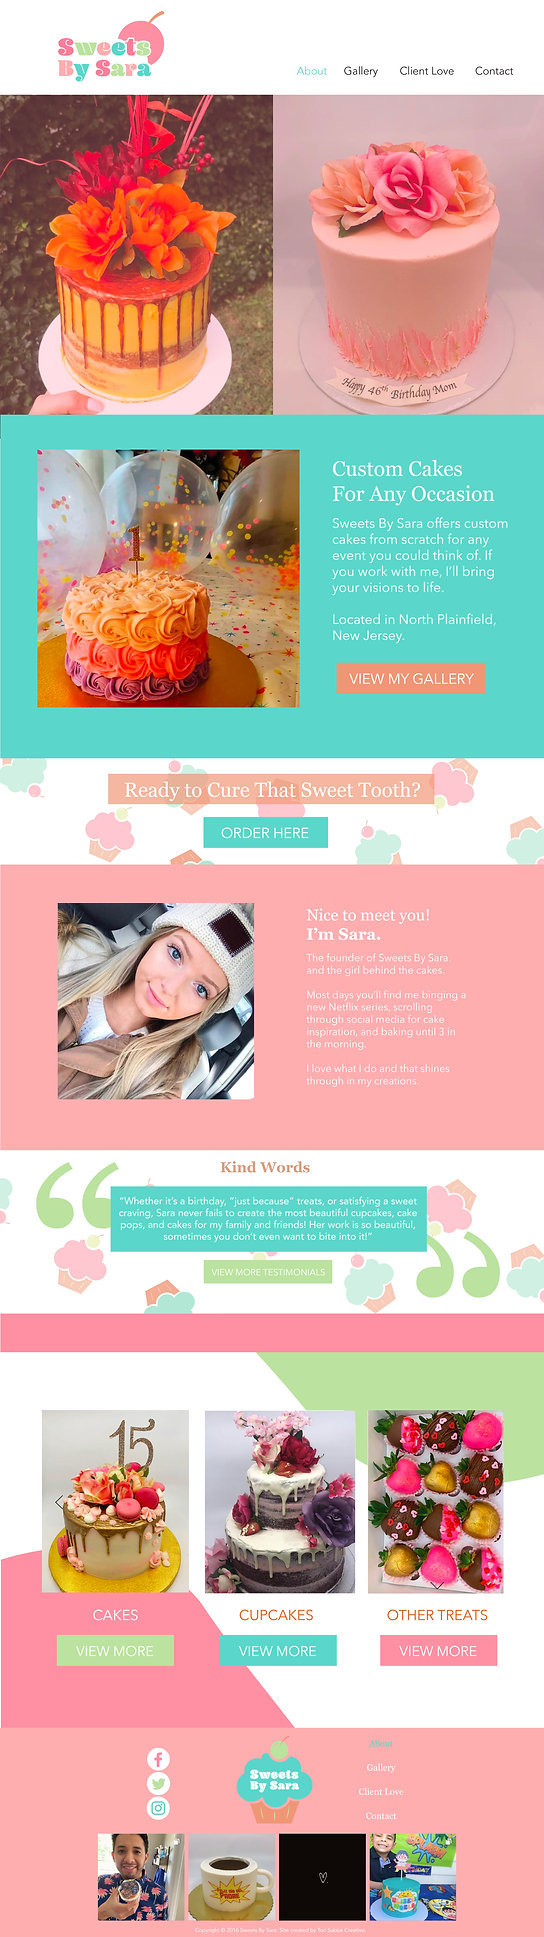 Sweets By Sara Web Design Template-01.jp